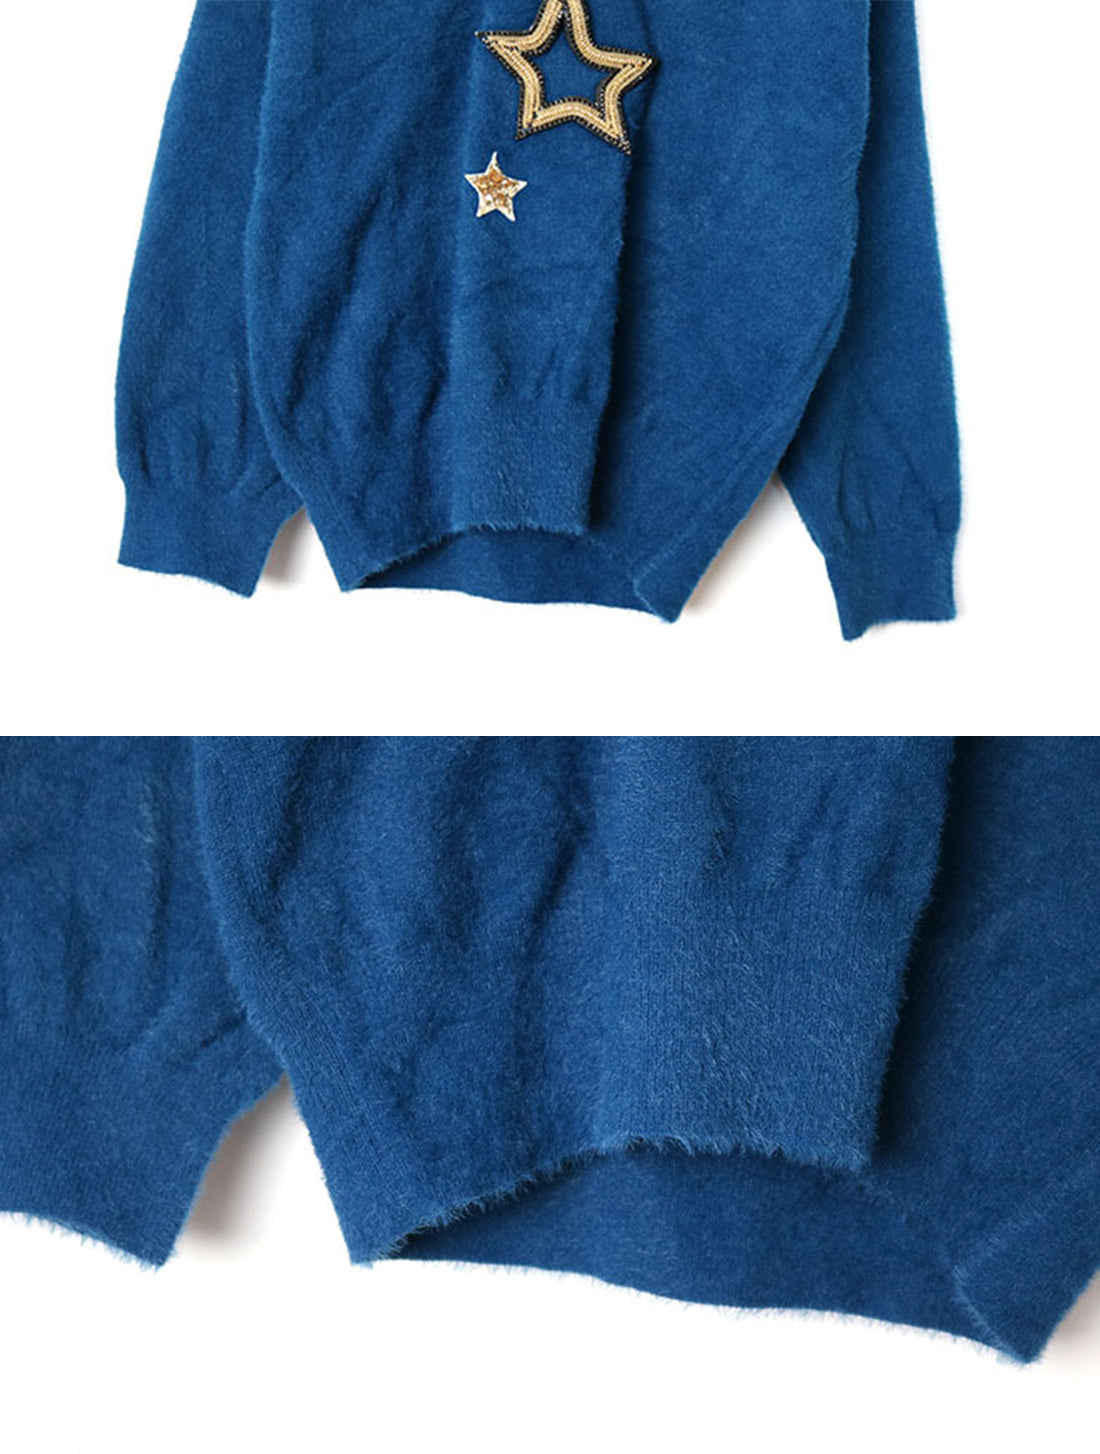 Obviously Edgy Star Embroidered Sweater Top Details 4